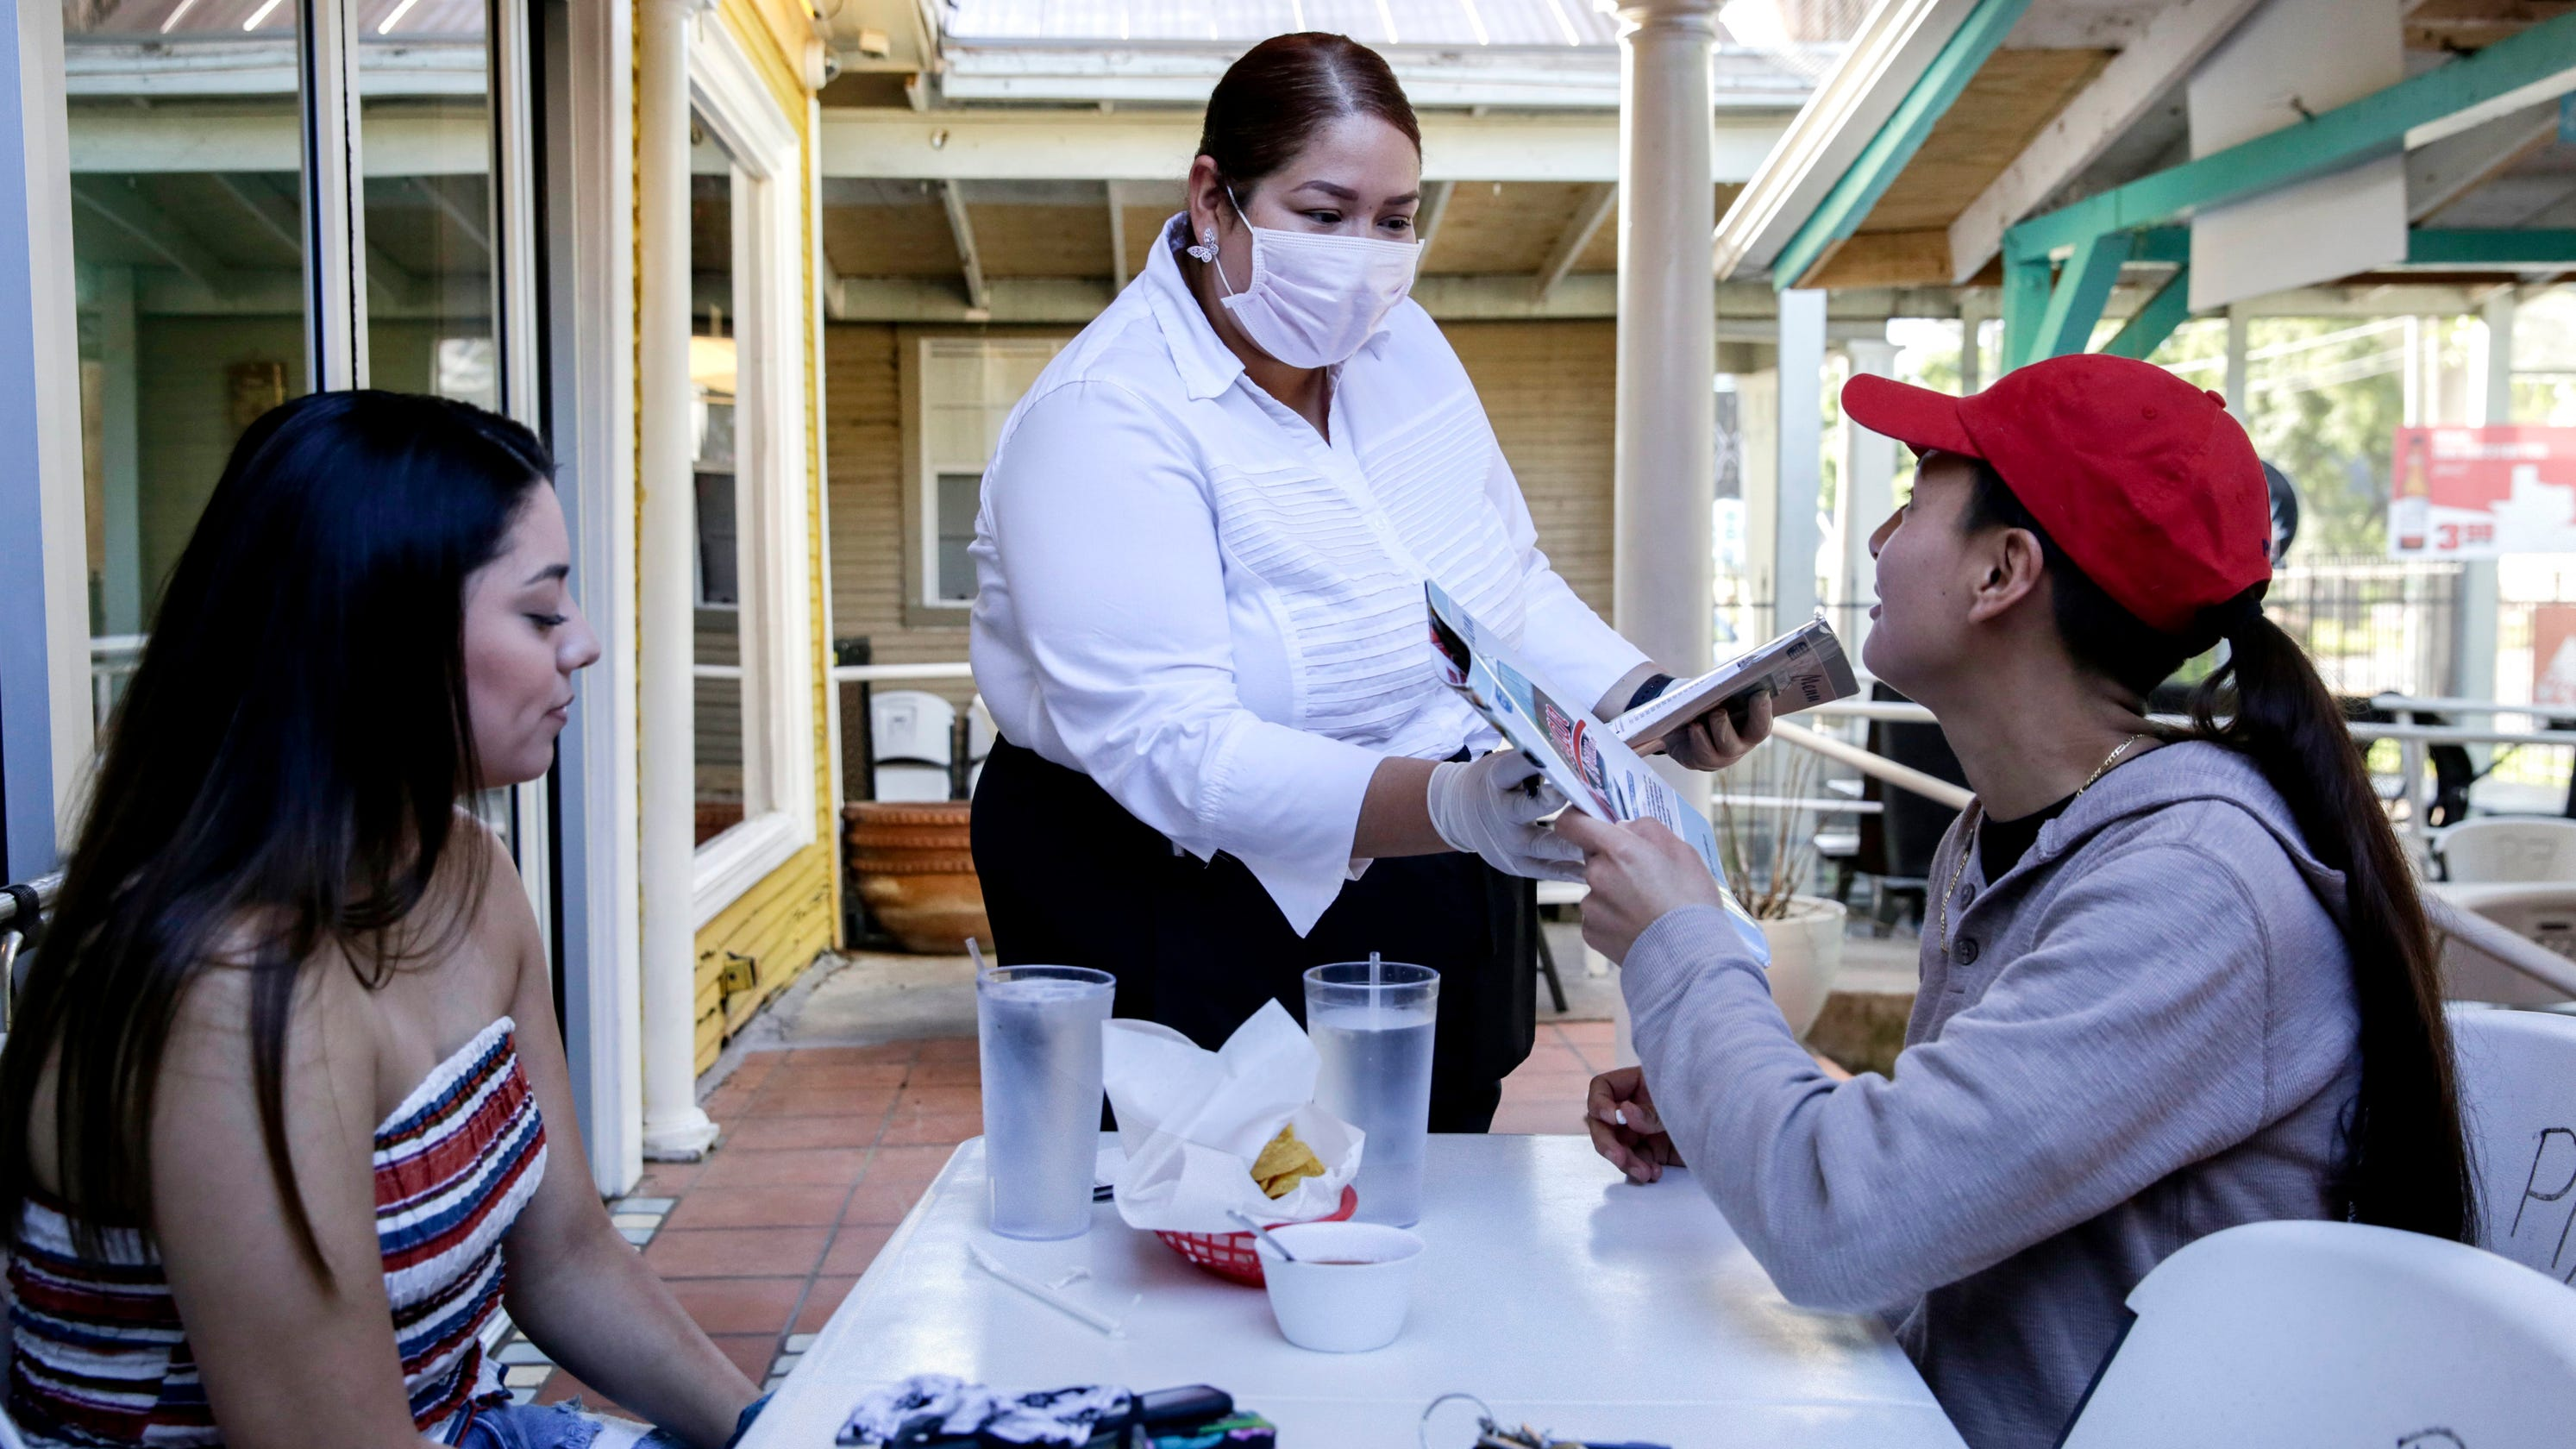 Across US, a 'tale of two cities' as some embrace reopening amid coronavirus and others remain wary